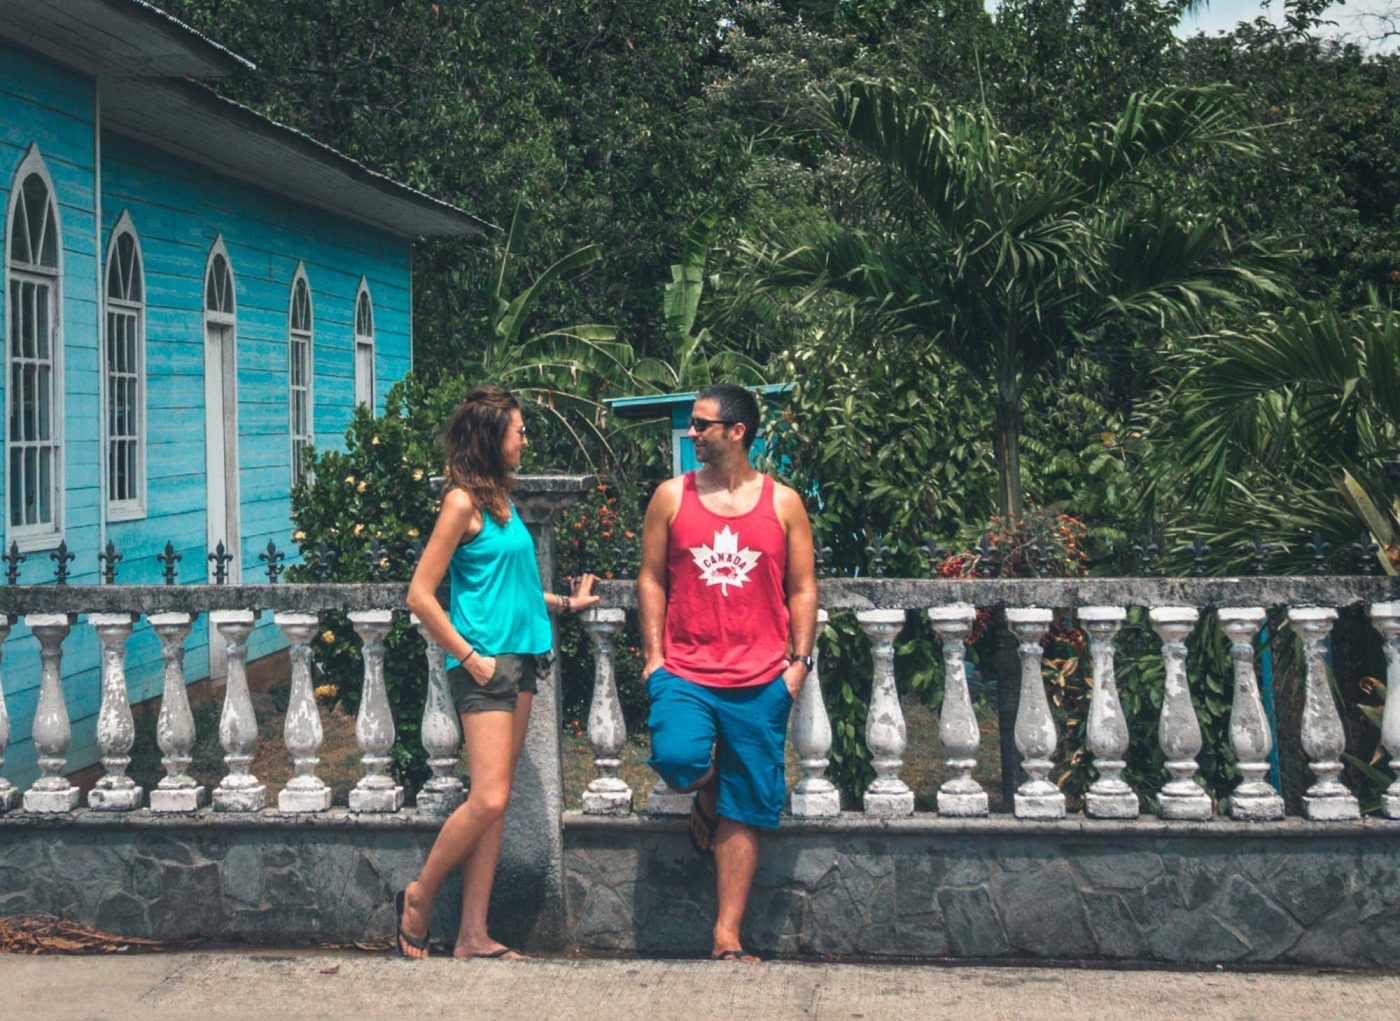 Sporting our Prana shorts on the streets of Costa Rica